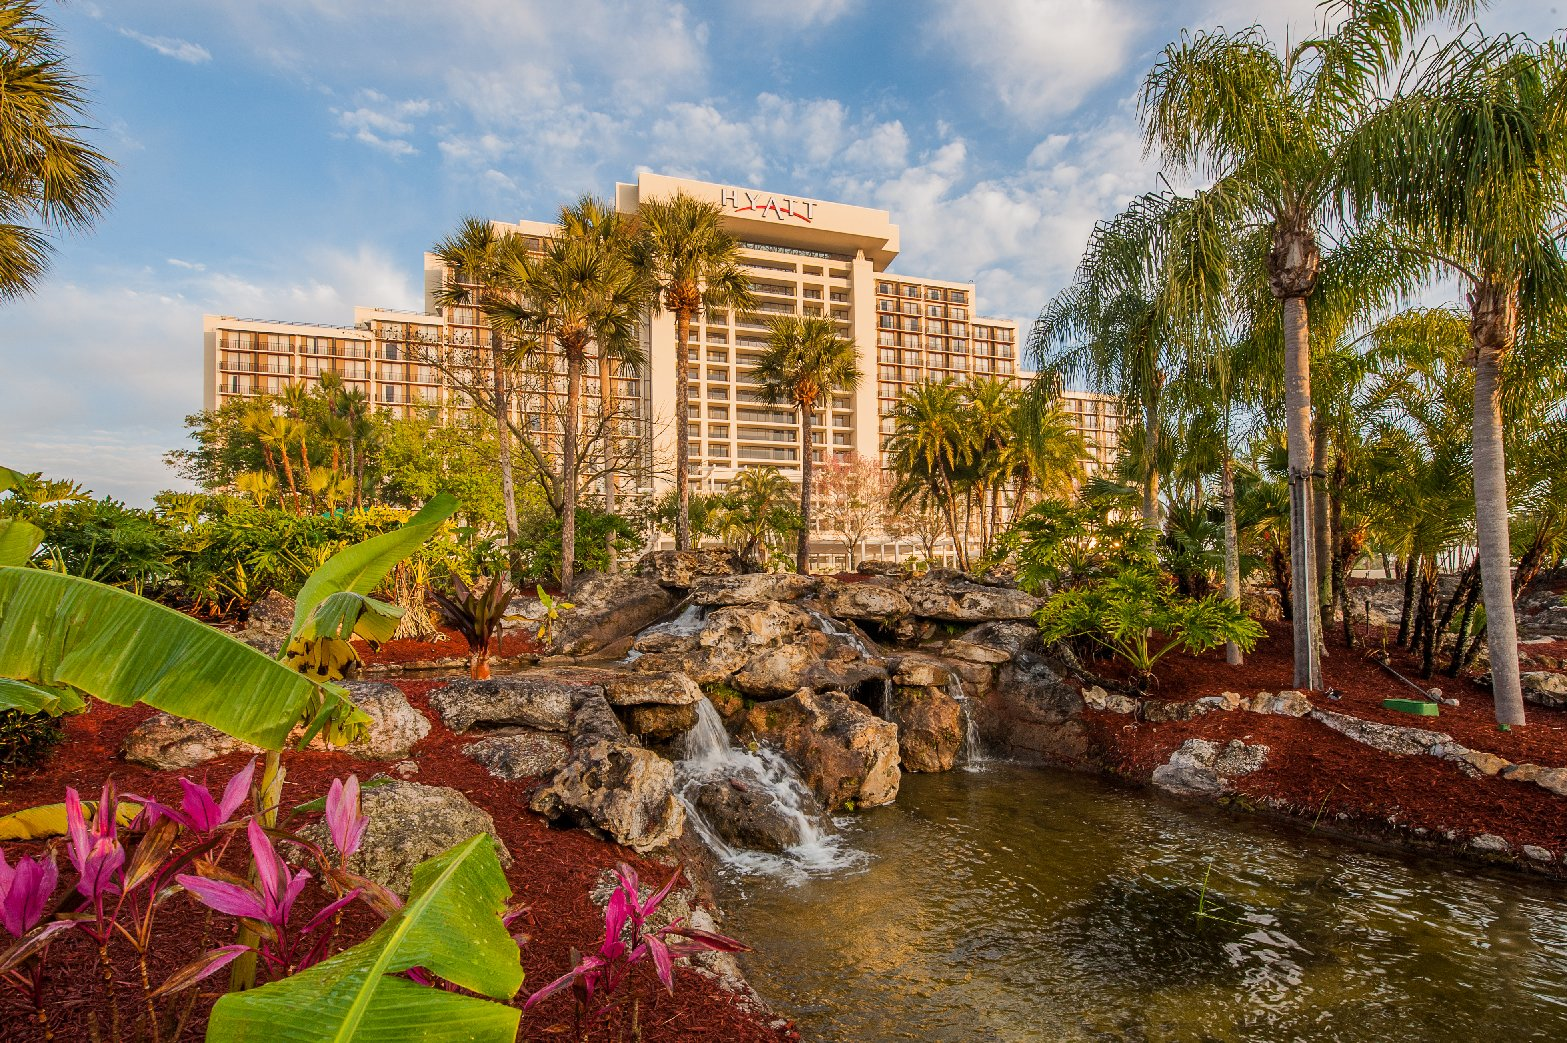 Hyatt Regency Grand Cypress